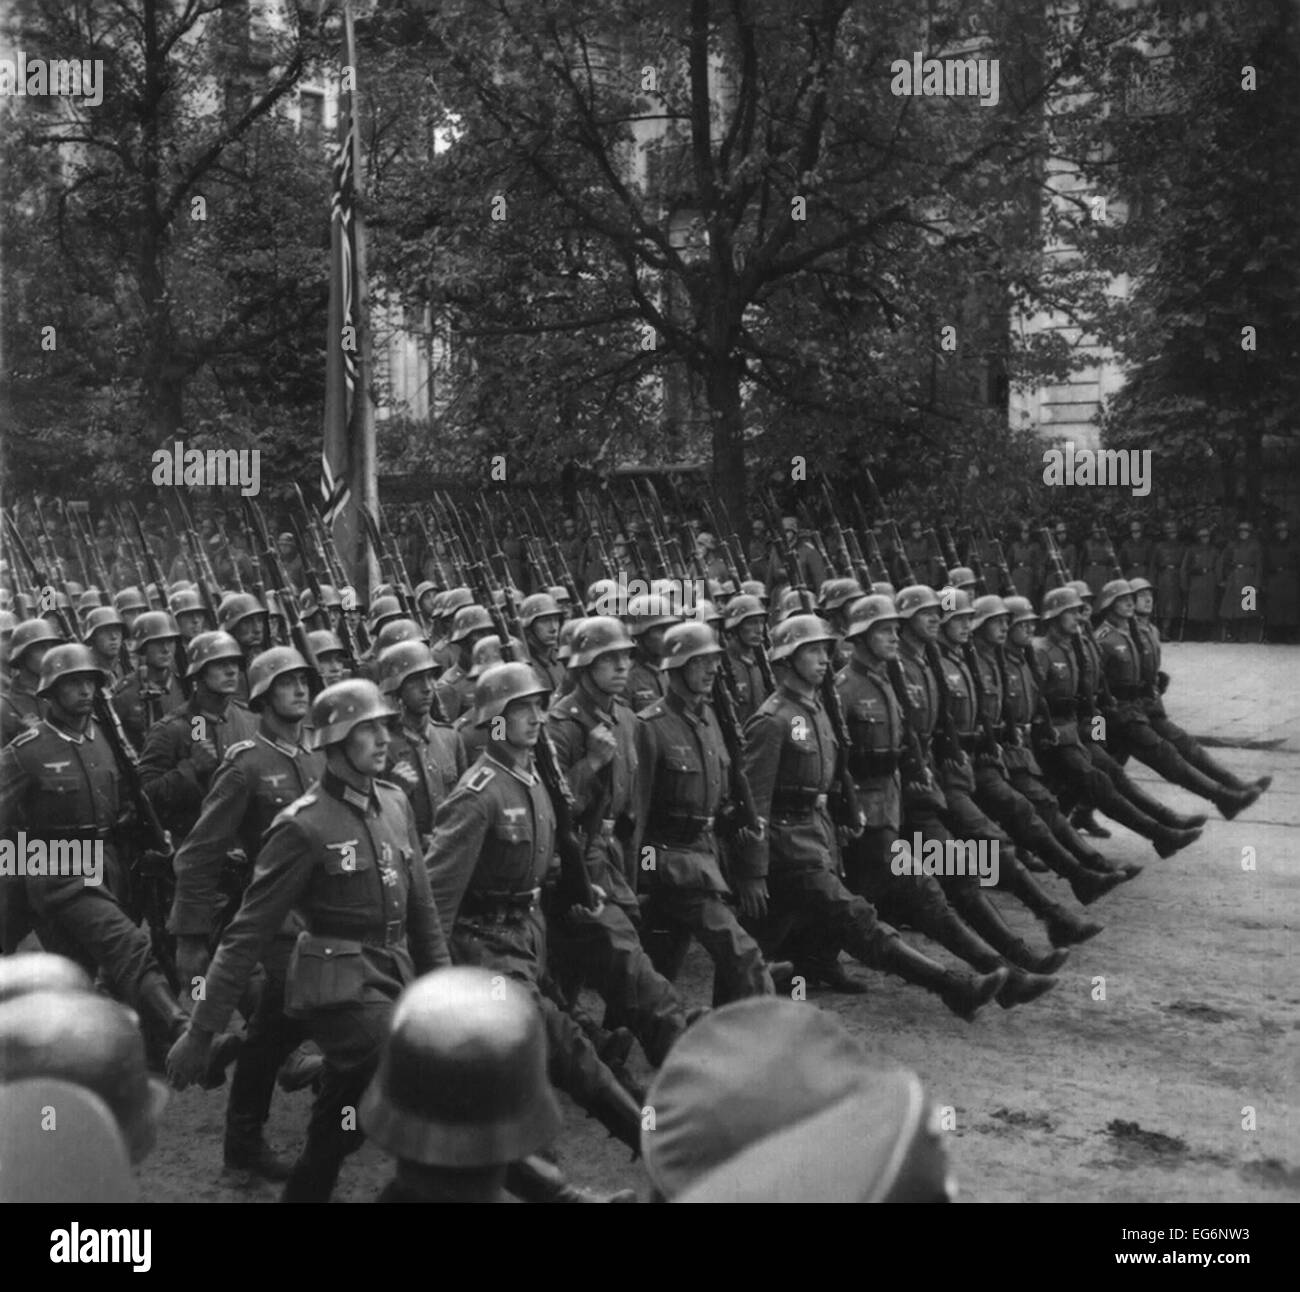 Goose-stepping German troops in a Victory parade through Warsaw, Poland. Sept. 1939. World War 2. (BSLOC_2014_10 - Stock Image